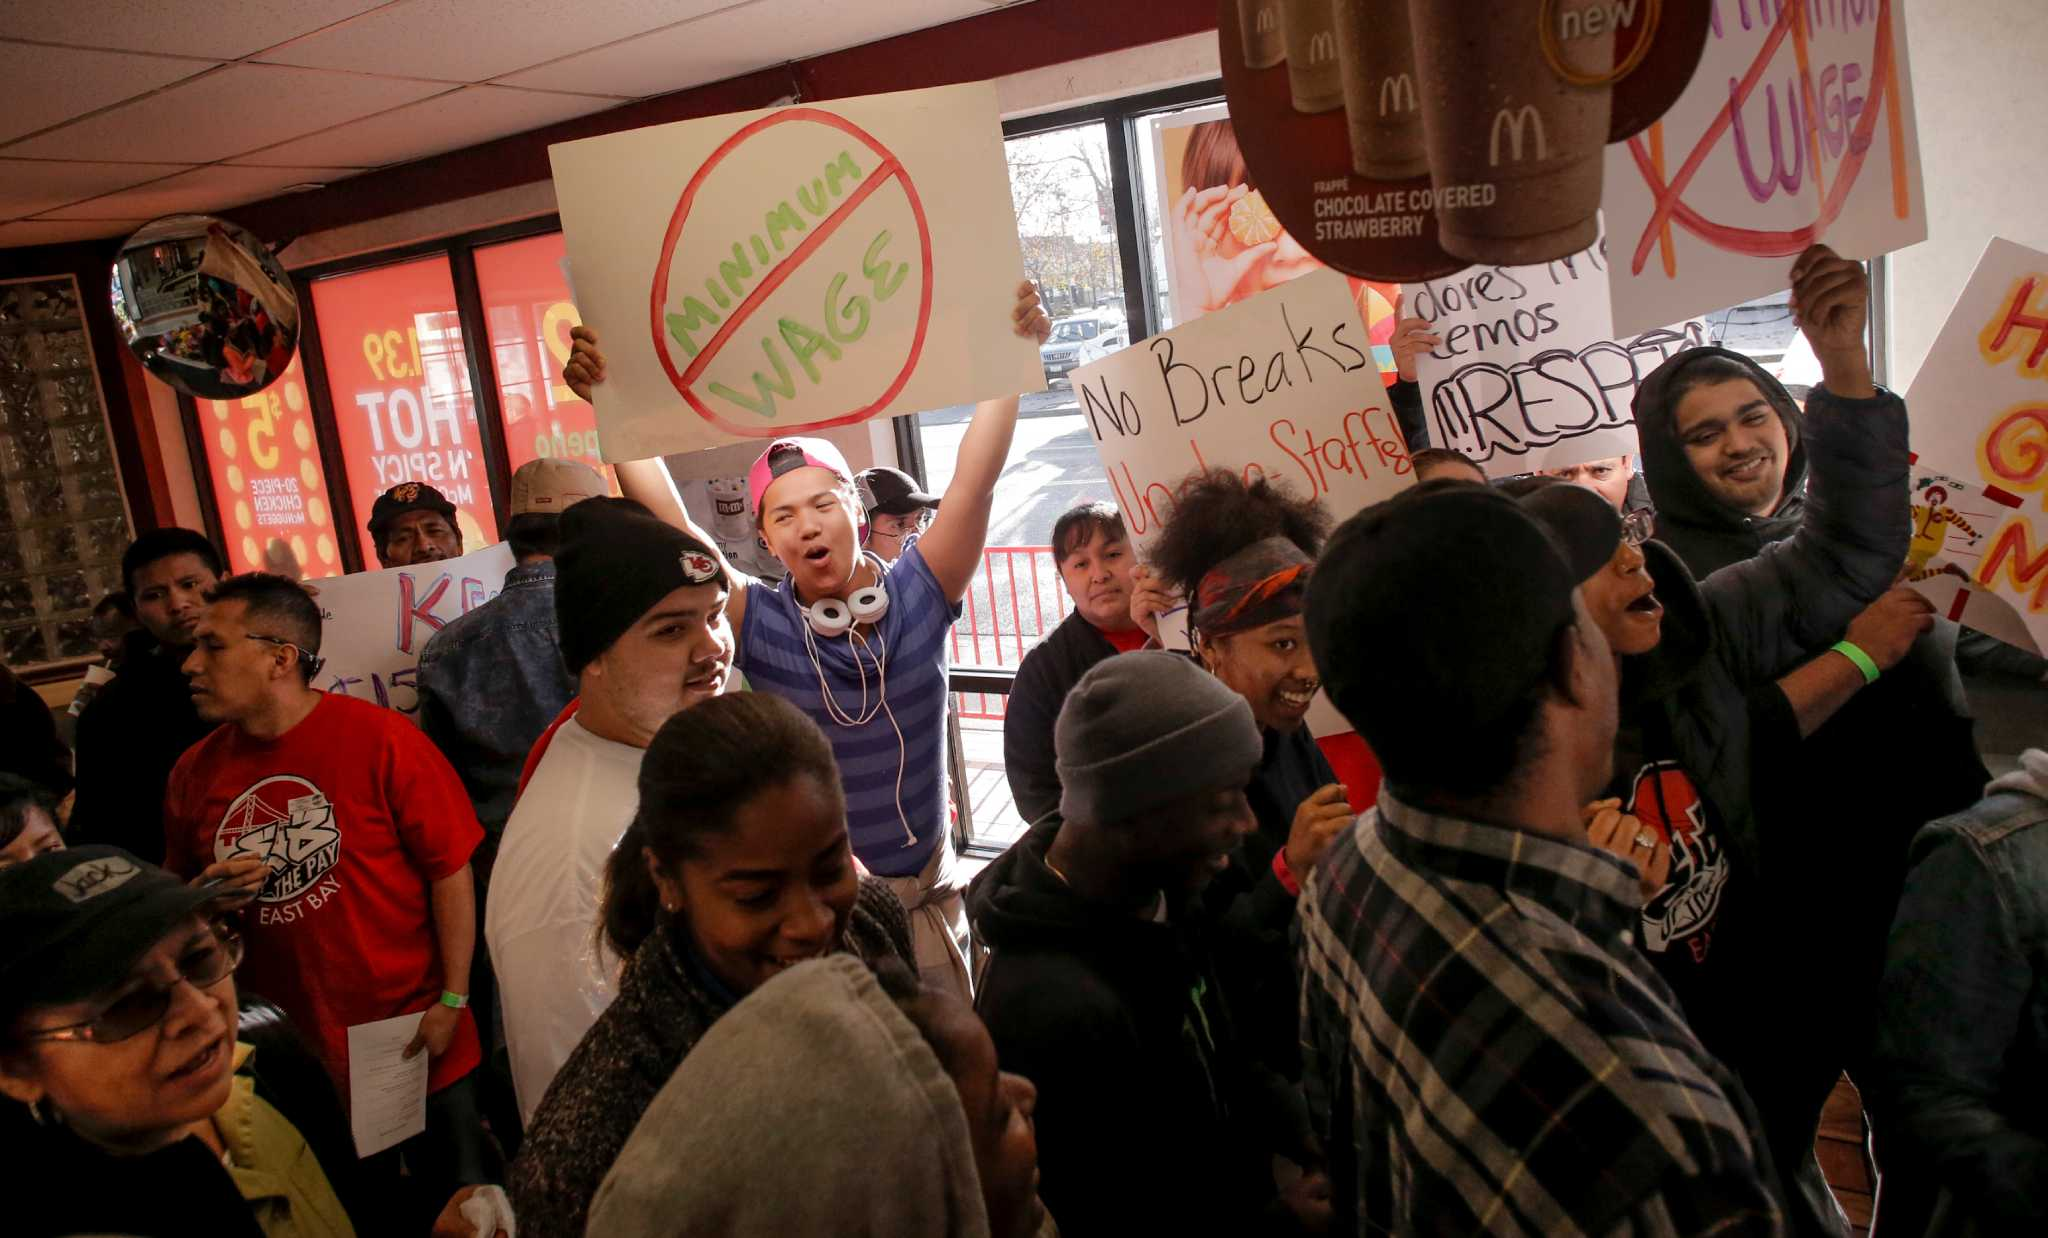 Fast food workers strike adds momentum to movement